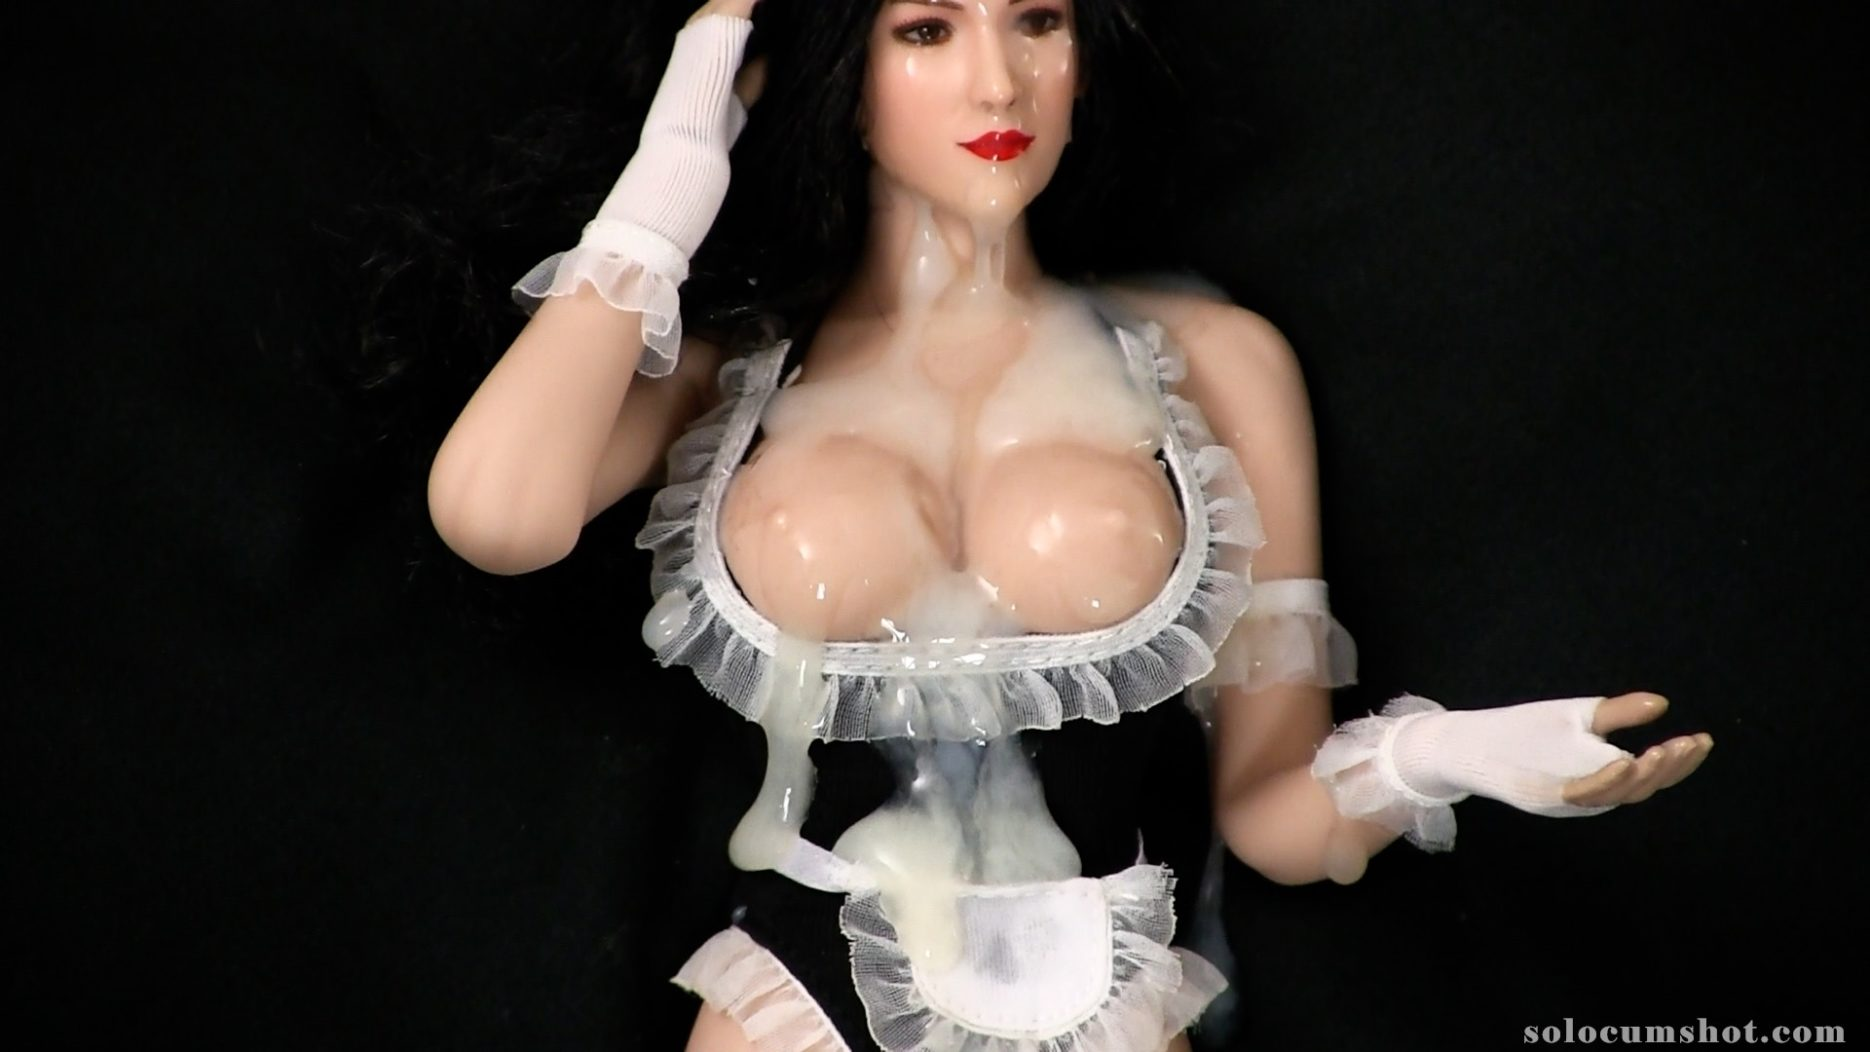 French maid doll bukkake